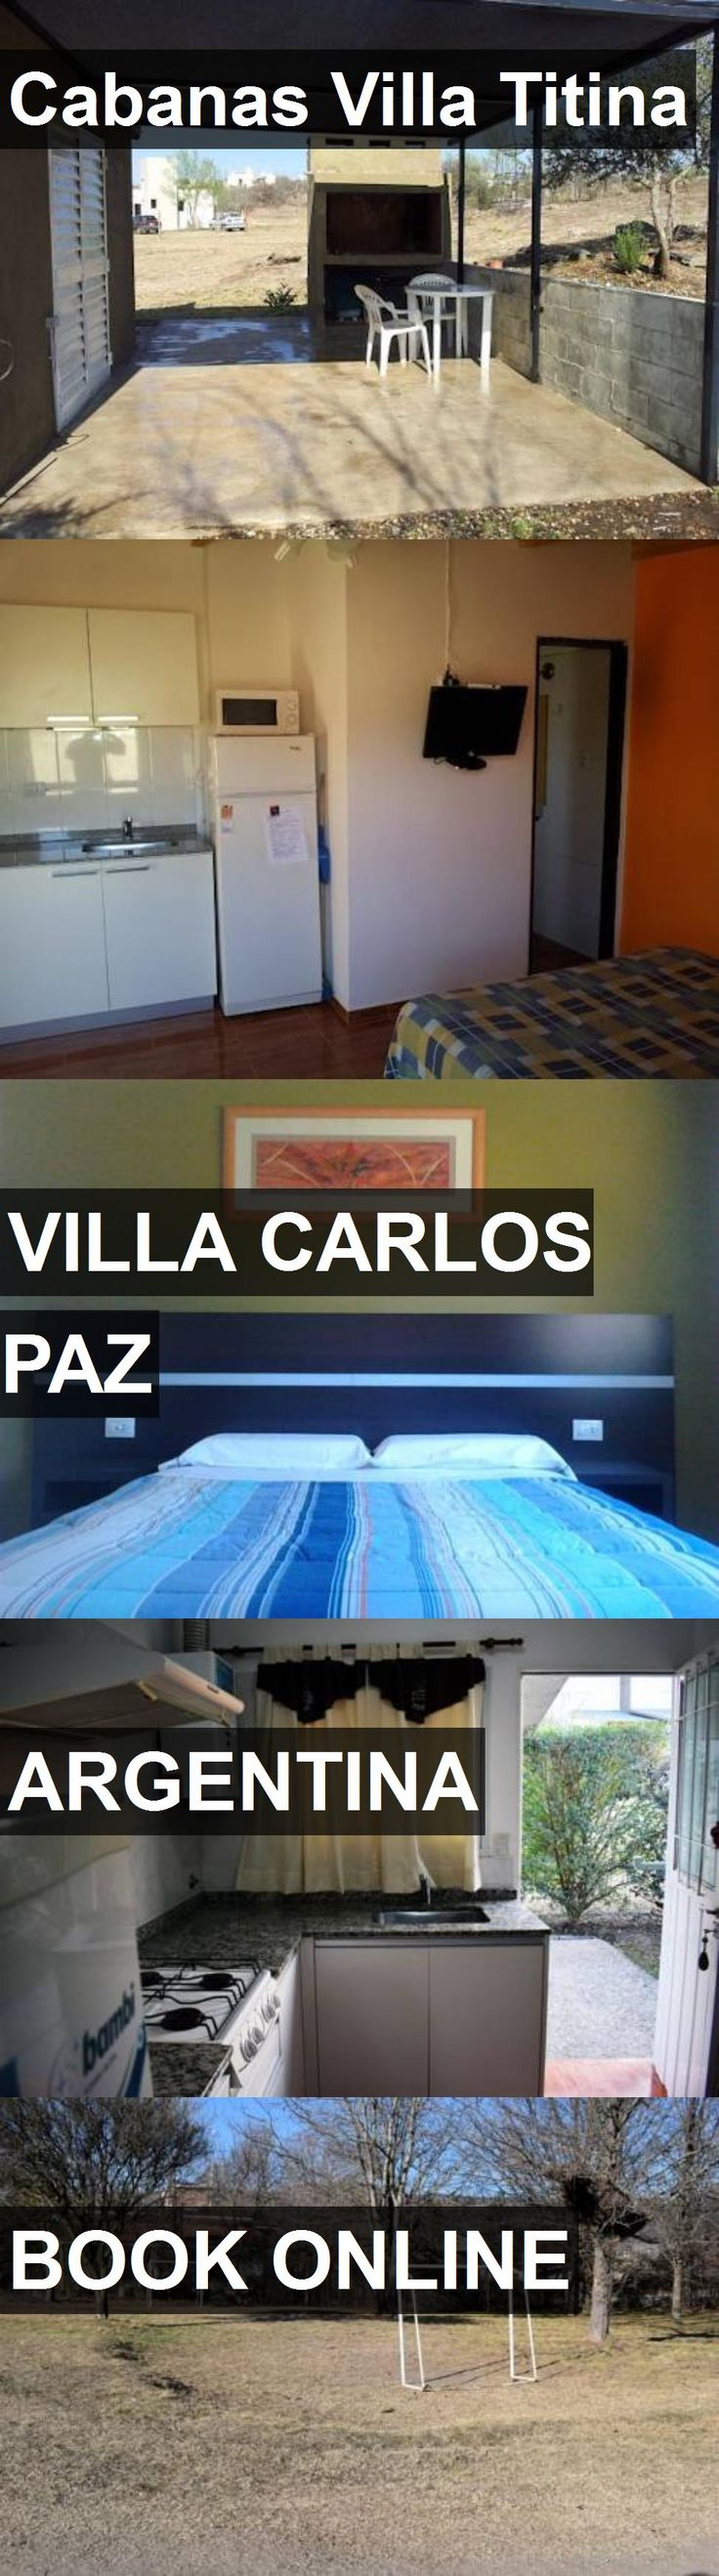 Hotel Cabanas Villa Titina in Villa Carlos Paz, Argentina. For more information, photos, reviews and best prices please follow the link. #Argentina #VillaCarlosPaz #CabanasVillaTitina #hotel #travel #vacation